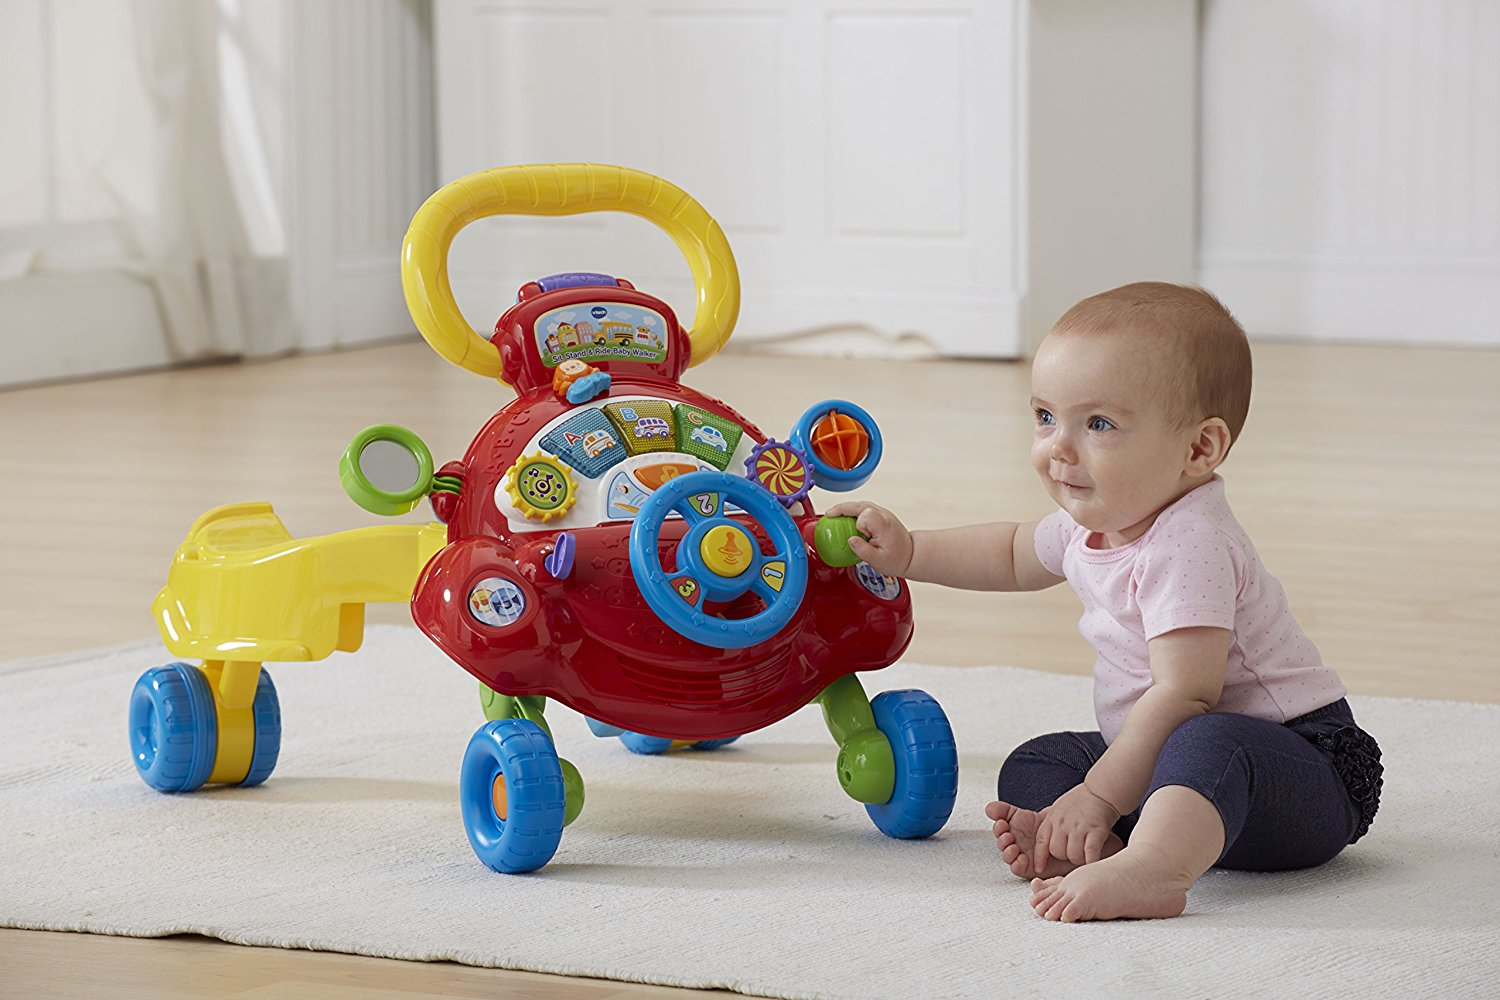 Best Vtech Toys For 1 Year Old